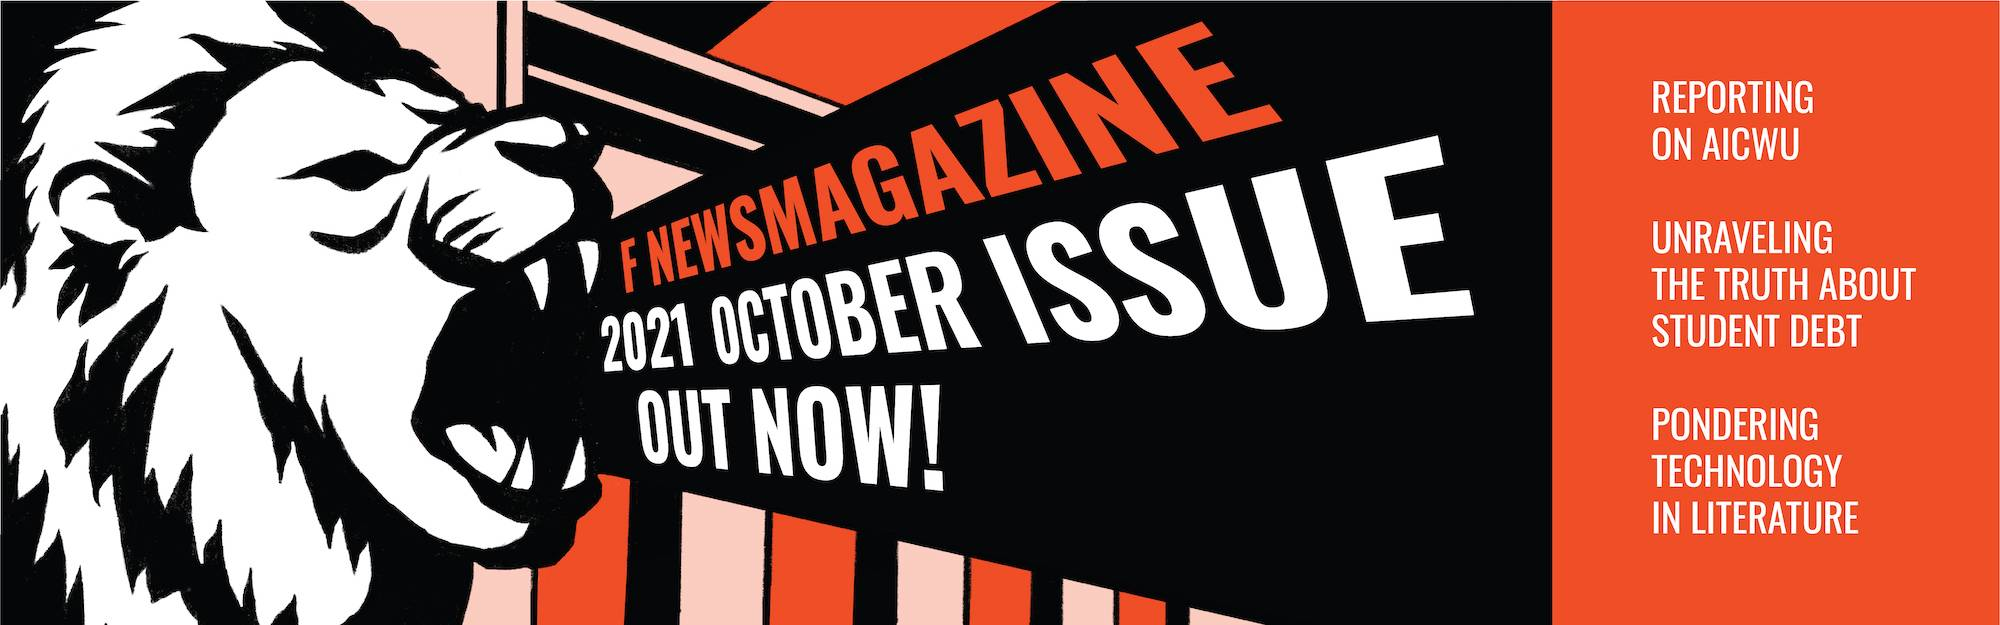 October 2021 Issue Out Now!